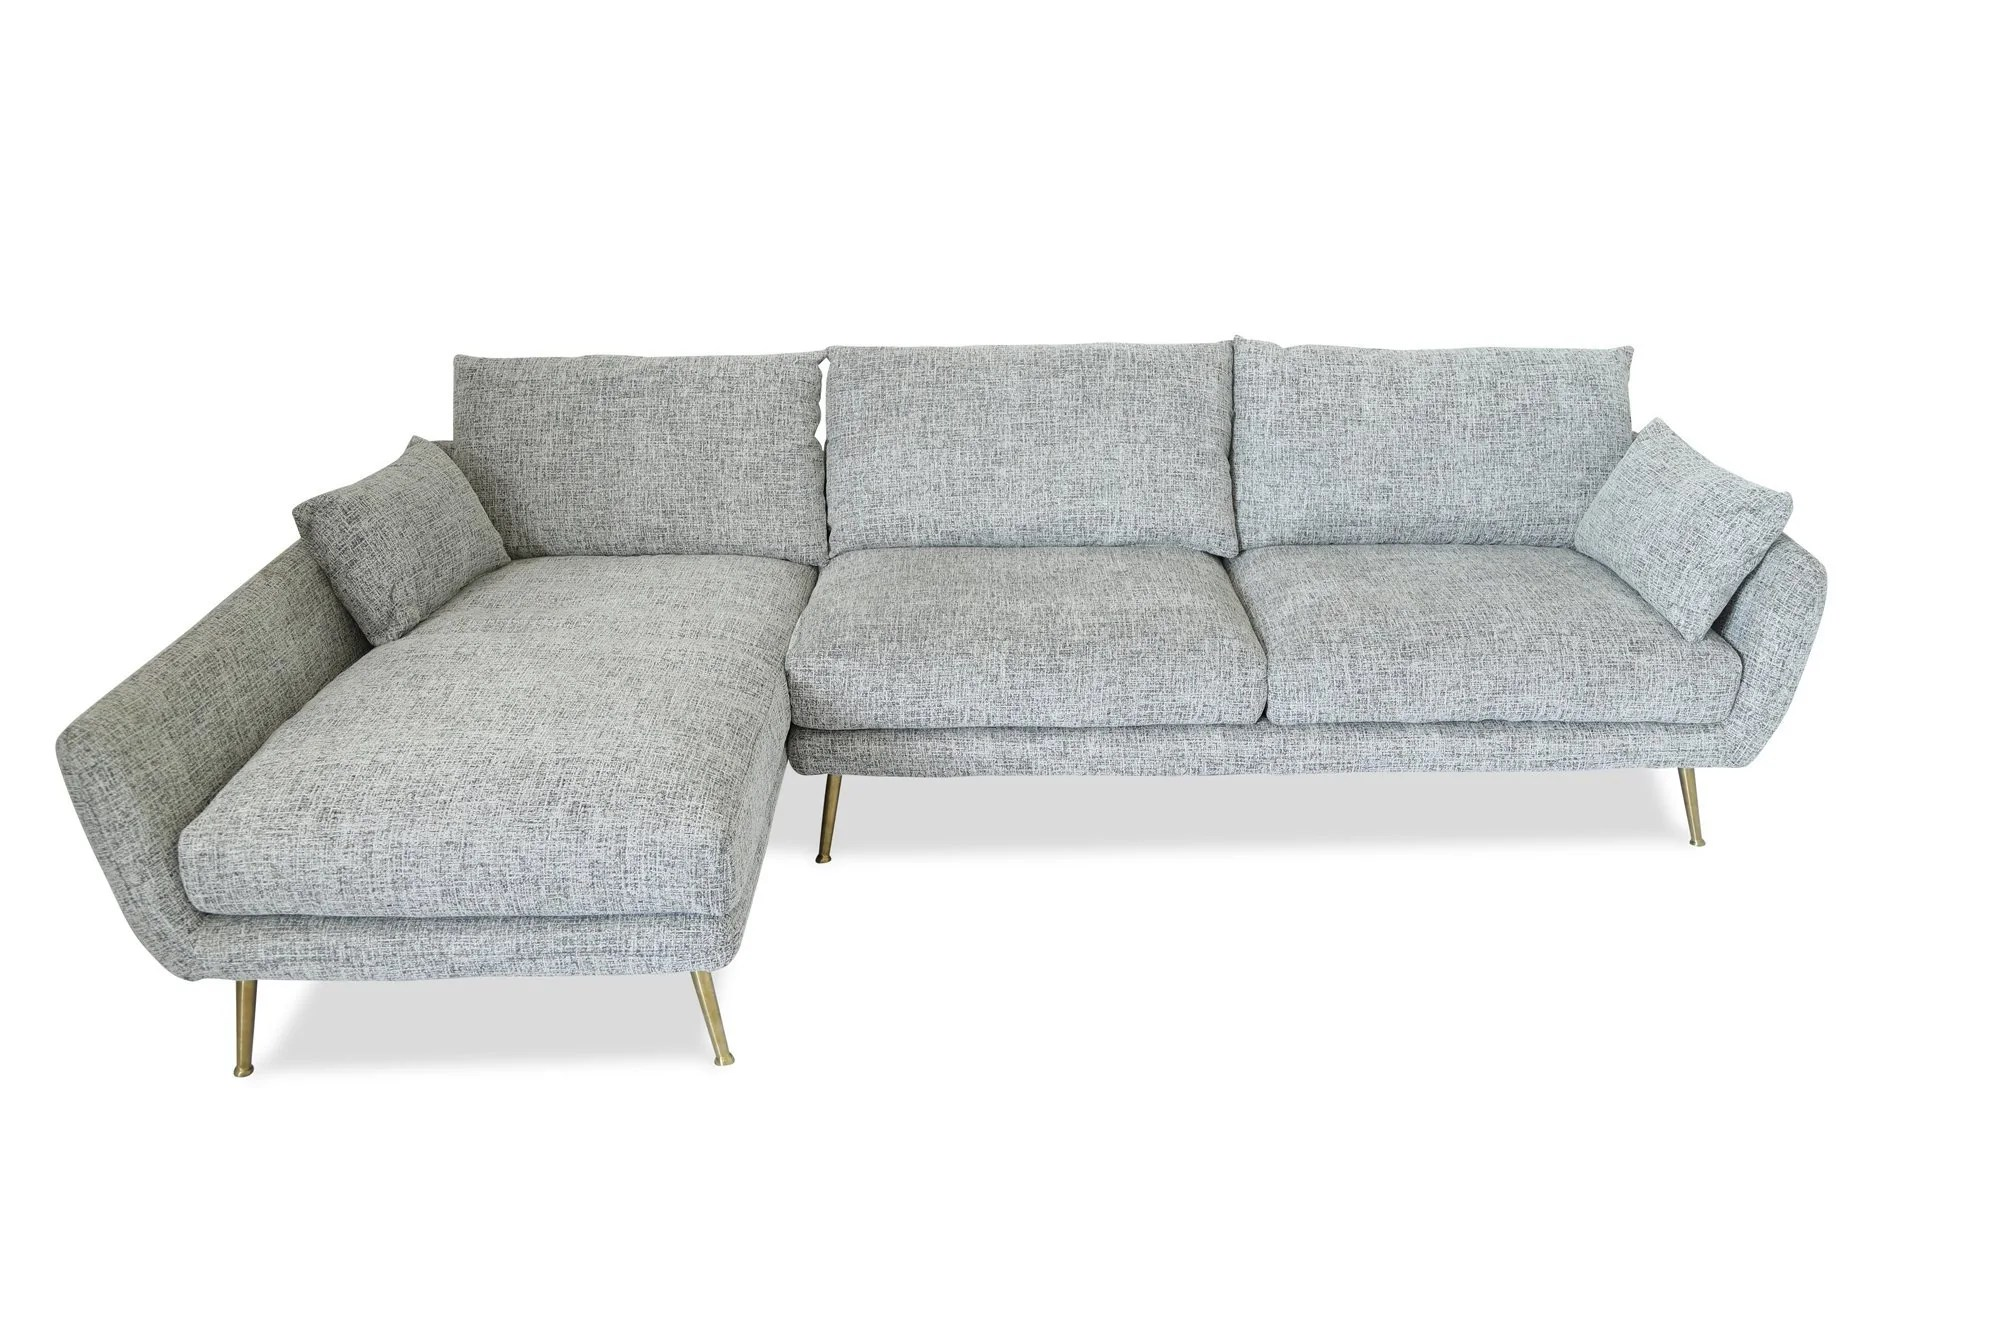 Sofa Modern Buy Edloe Finch Ef Zx Sc002l Harlow Mid Century Modern Sectional Sofa Fulton Grey Left Facing At Contemporary Furniture Warehouse